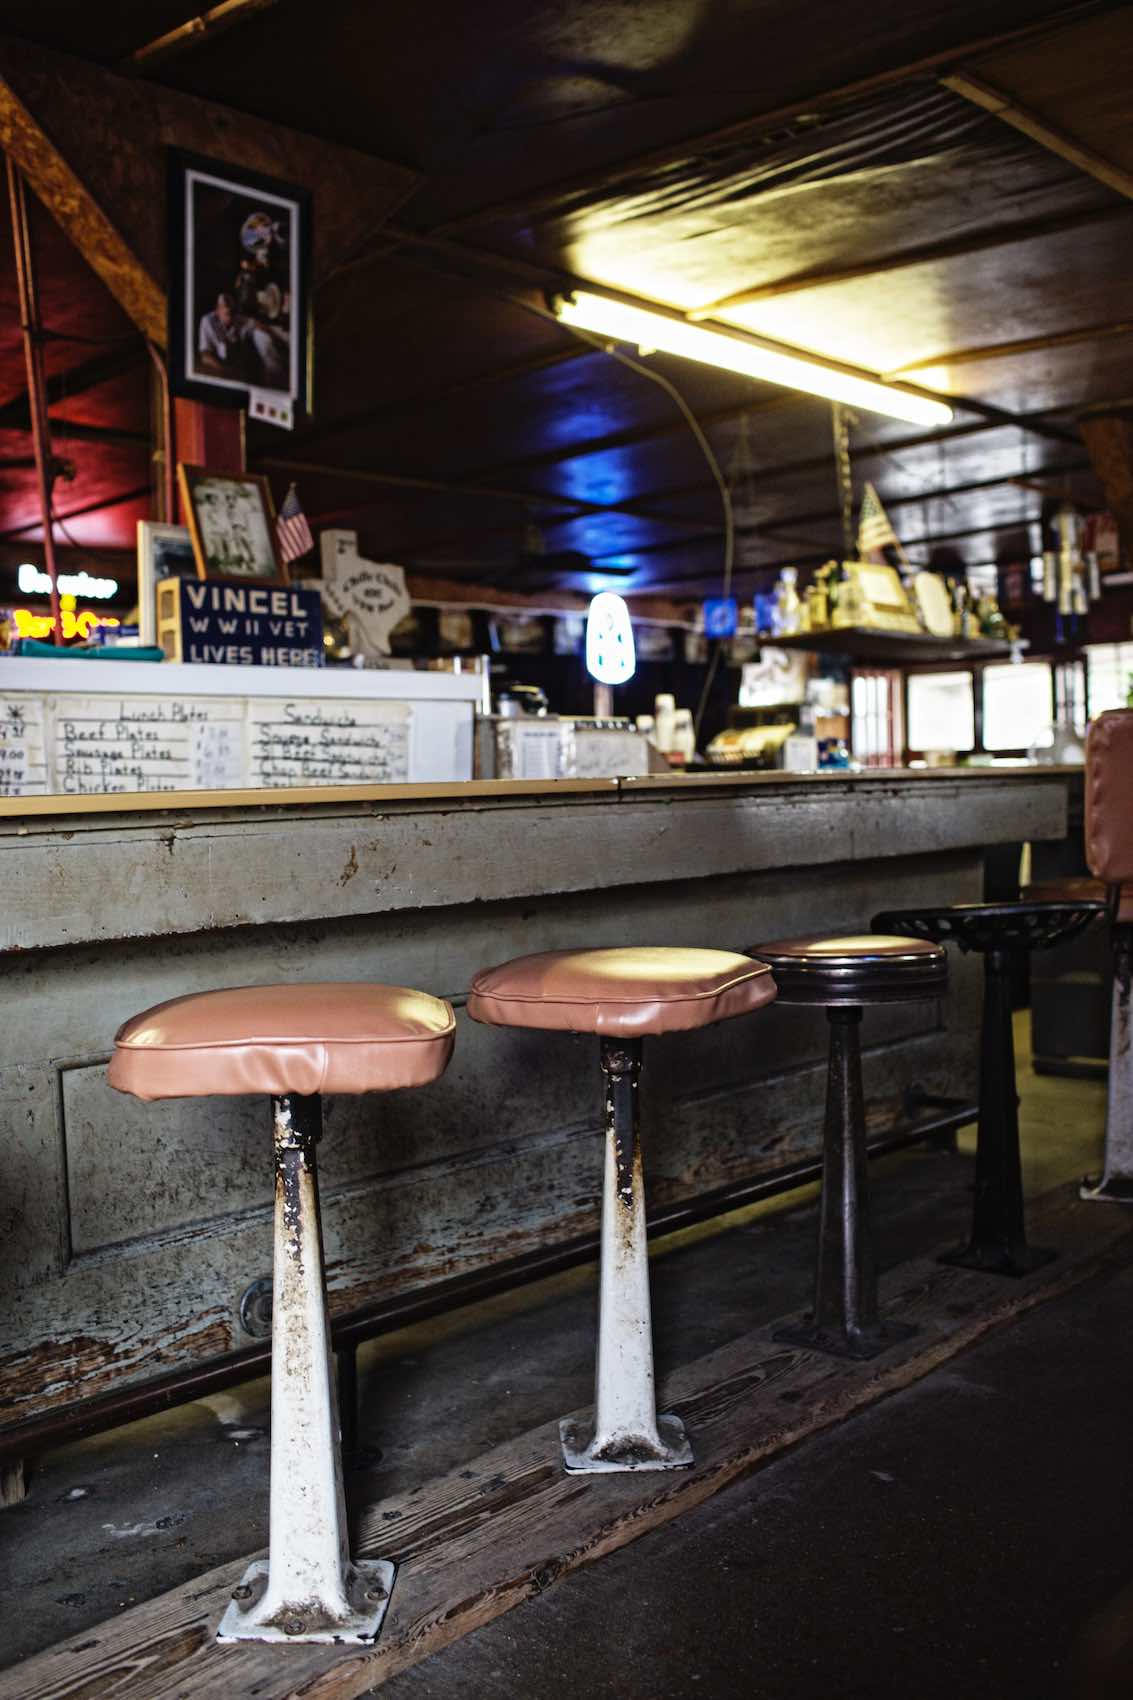 Jody Horton Photography - Dive-y bar interior.